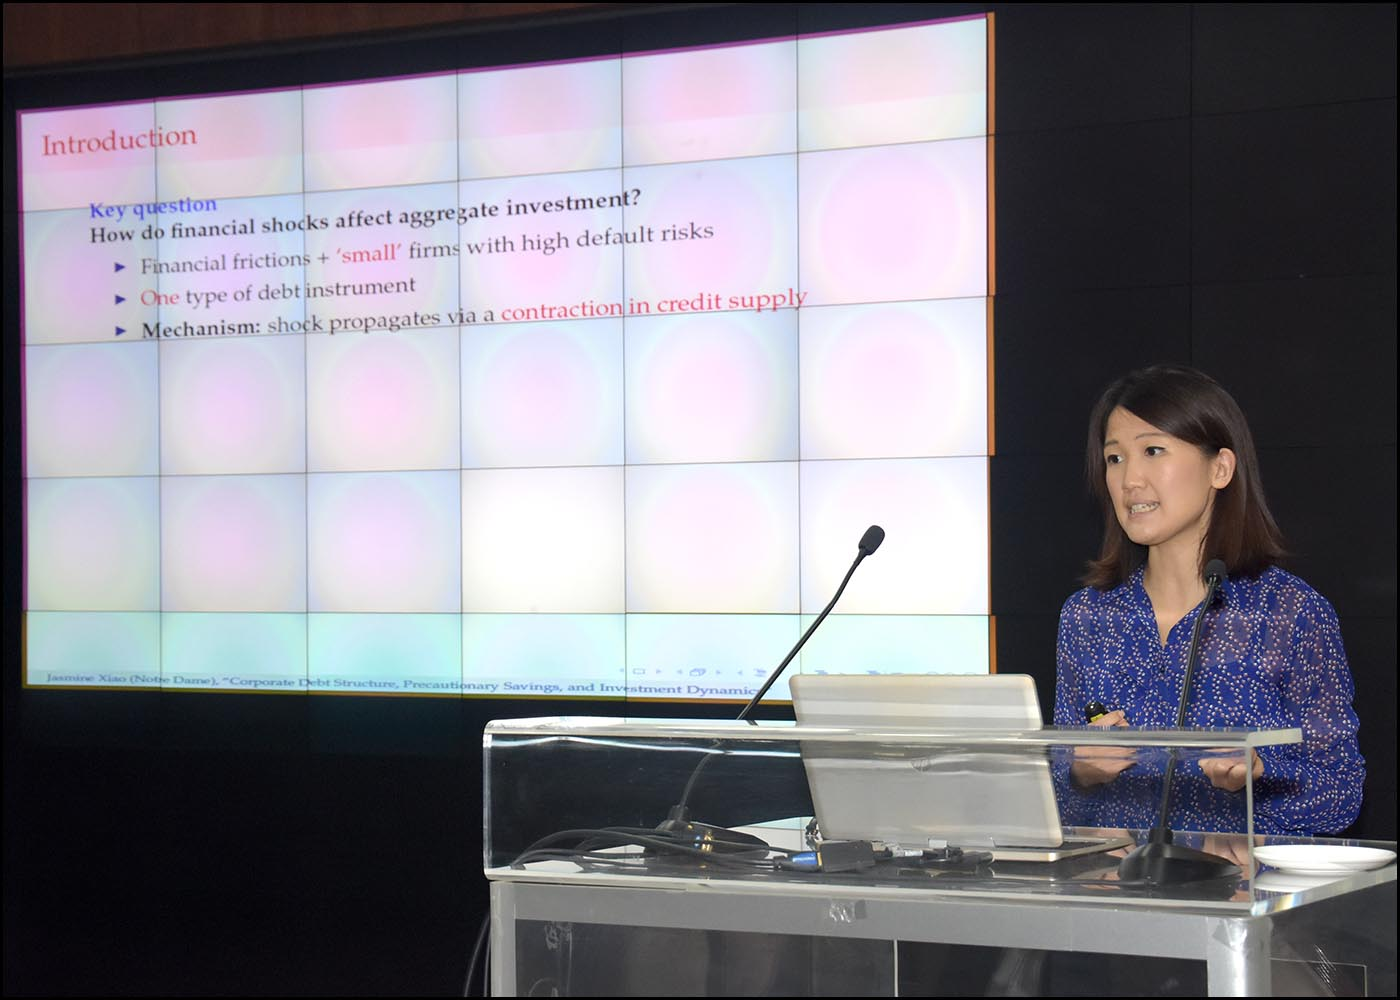 Dr. Jasmine Xiao, Asst. Prof. - University of Notredame, USA